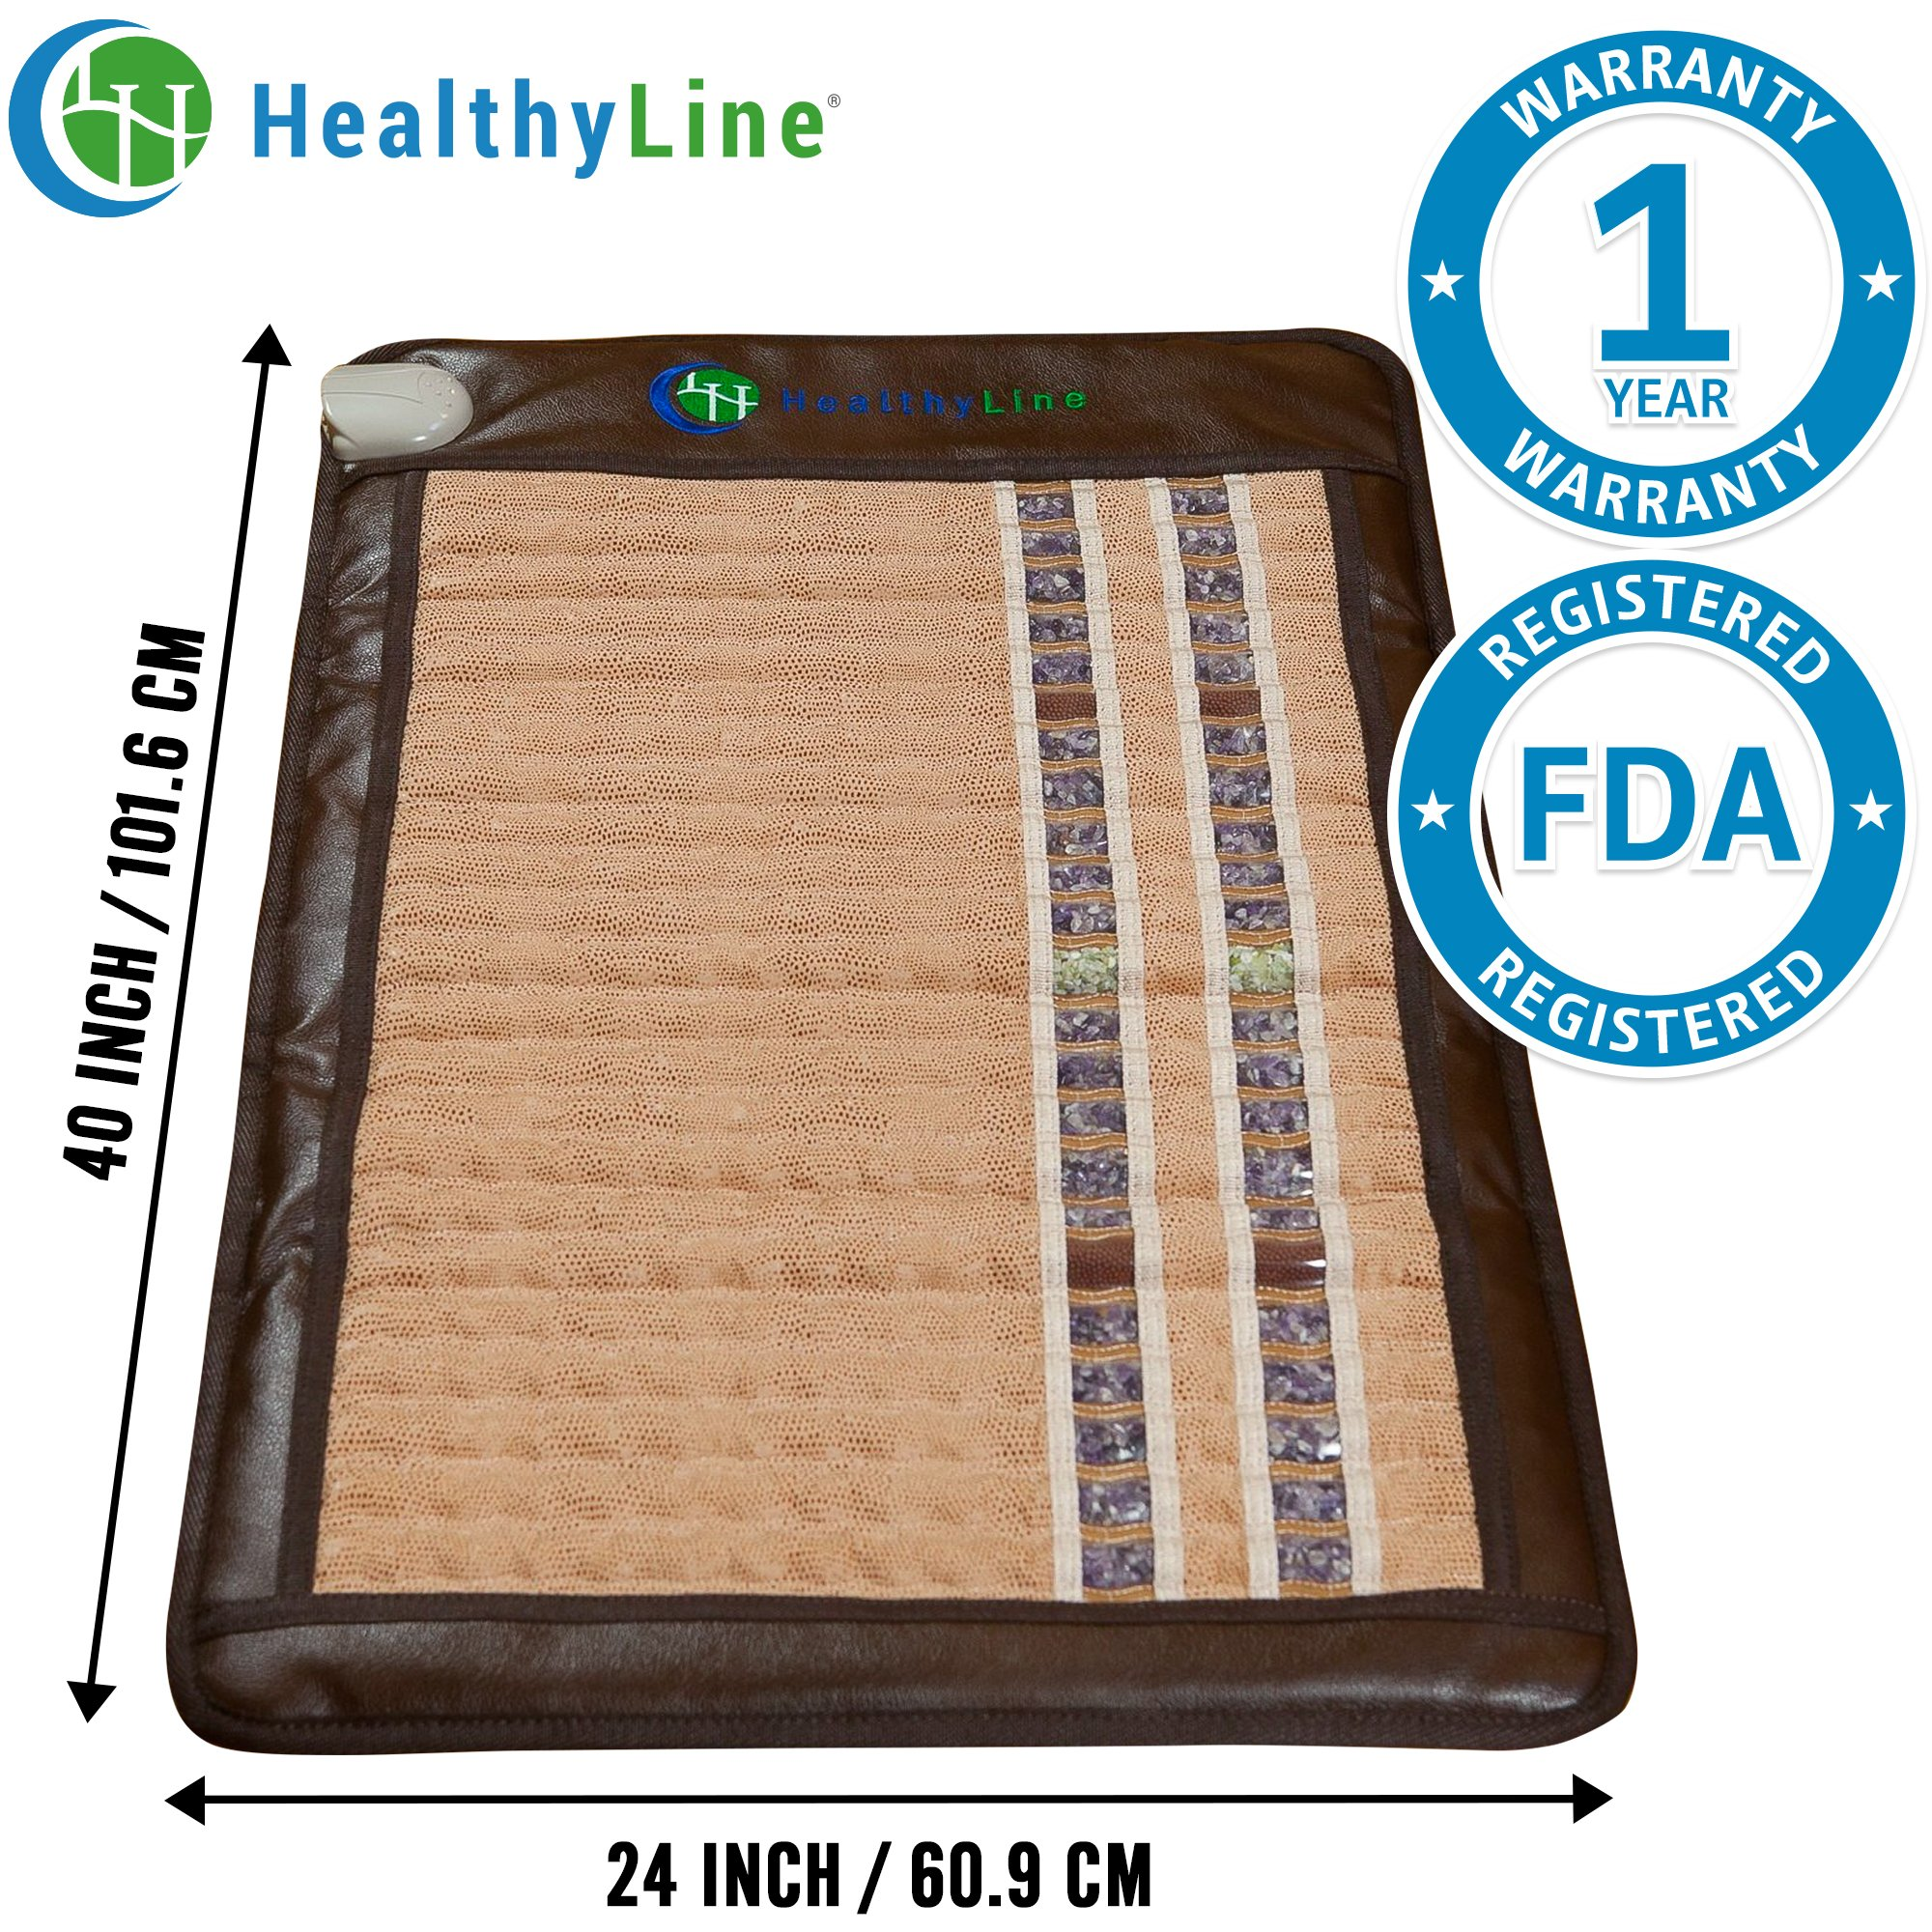 HealthyLine Infrared Heating Mat / Blanket (Soft & Flexible)|TAJ, Natural Amethyst, Jade & Tourmaline Ceramic, (Medium Size) 40″ x 24″ |Relieve Pain, Sore Muscles |​​US FDA Registered by HealthyLine